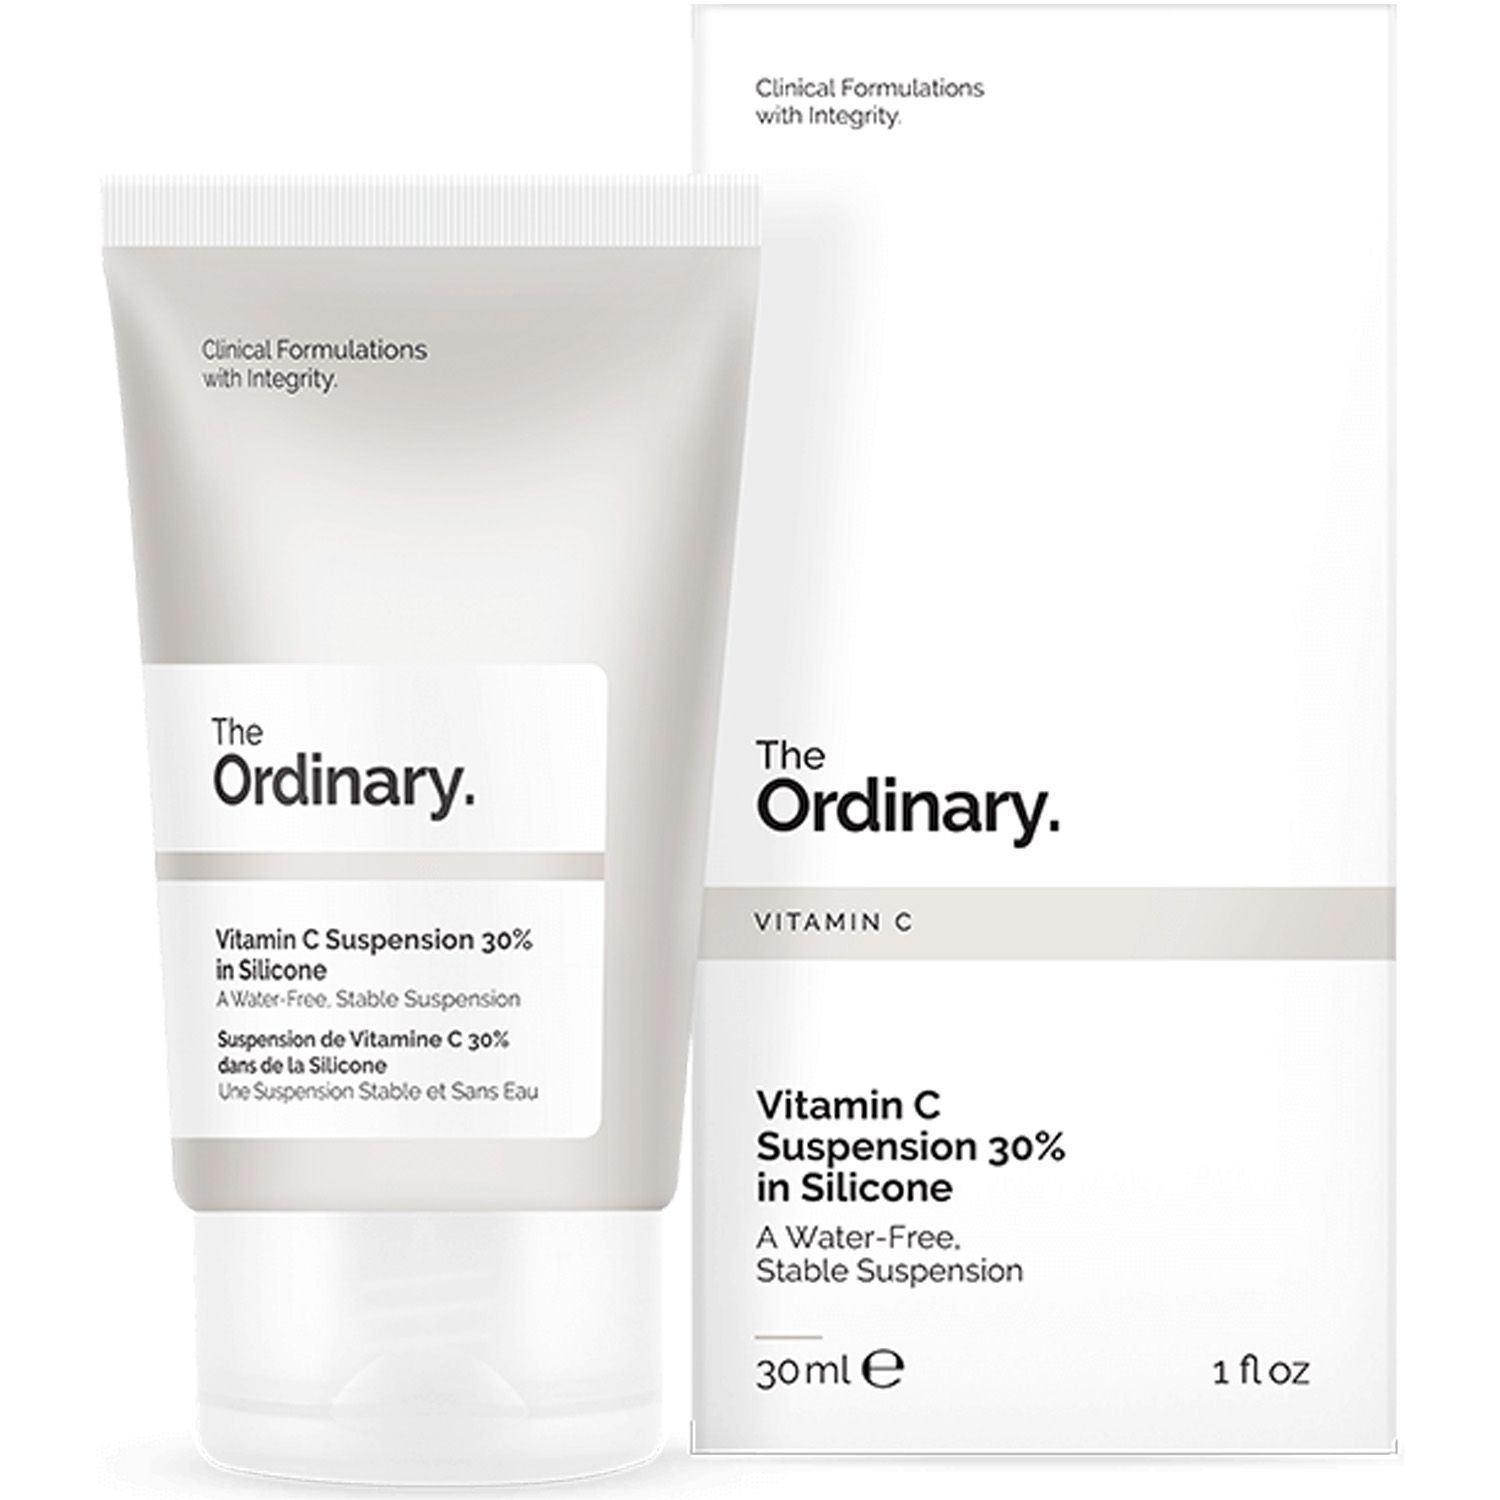 The Ordinary Vitamin C Suspension 30% in Silicone 30ml Suspensão Vitamina C Importado